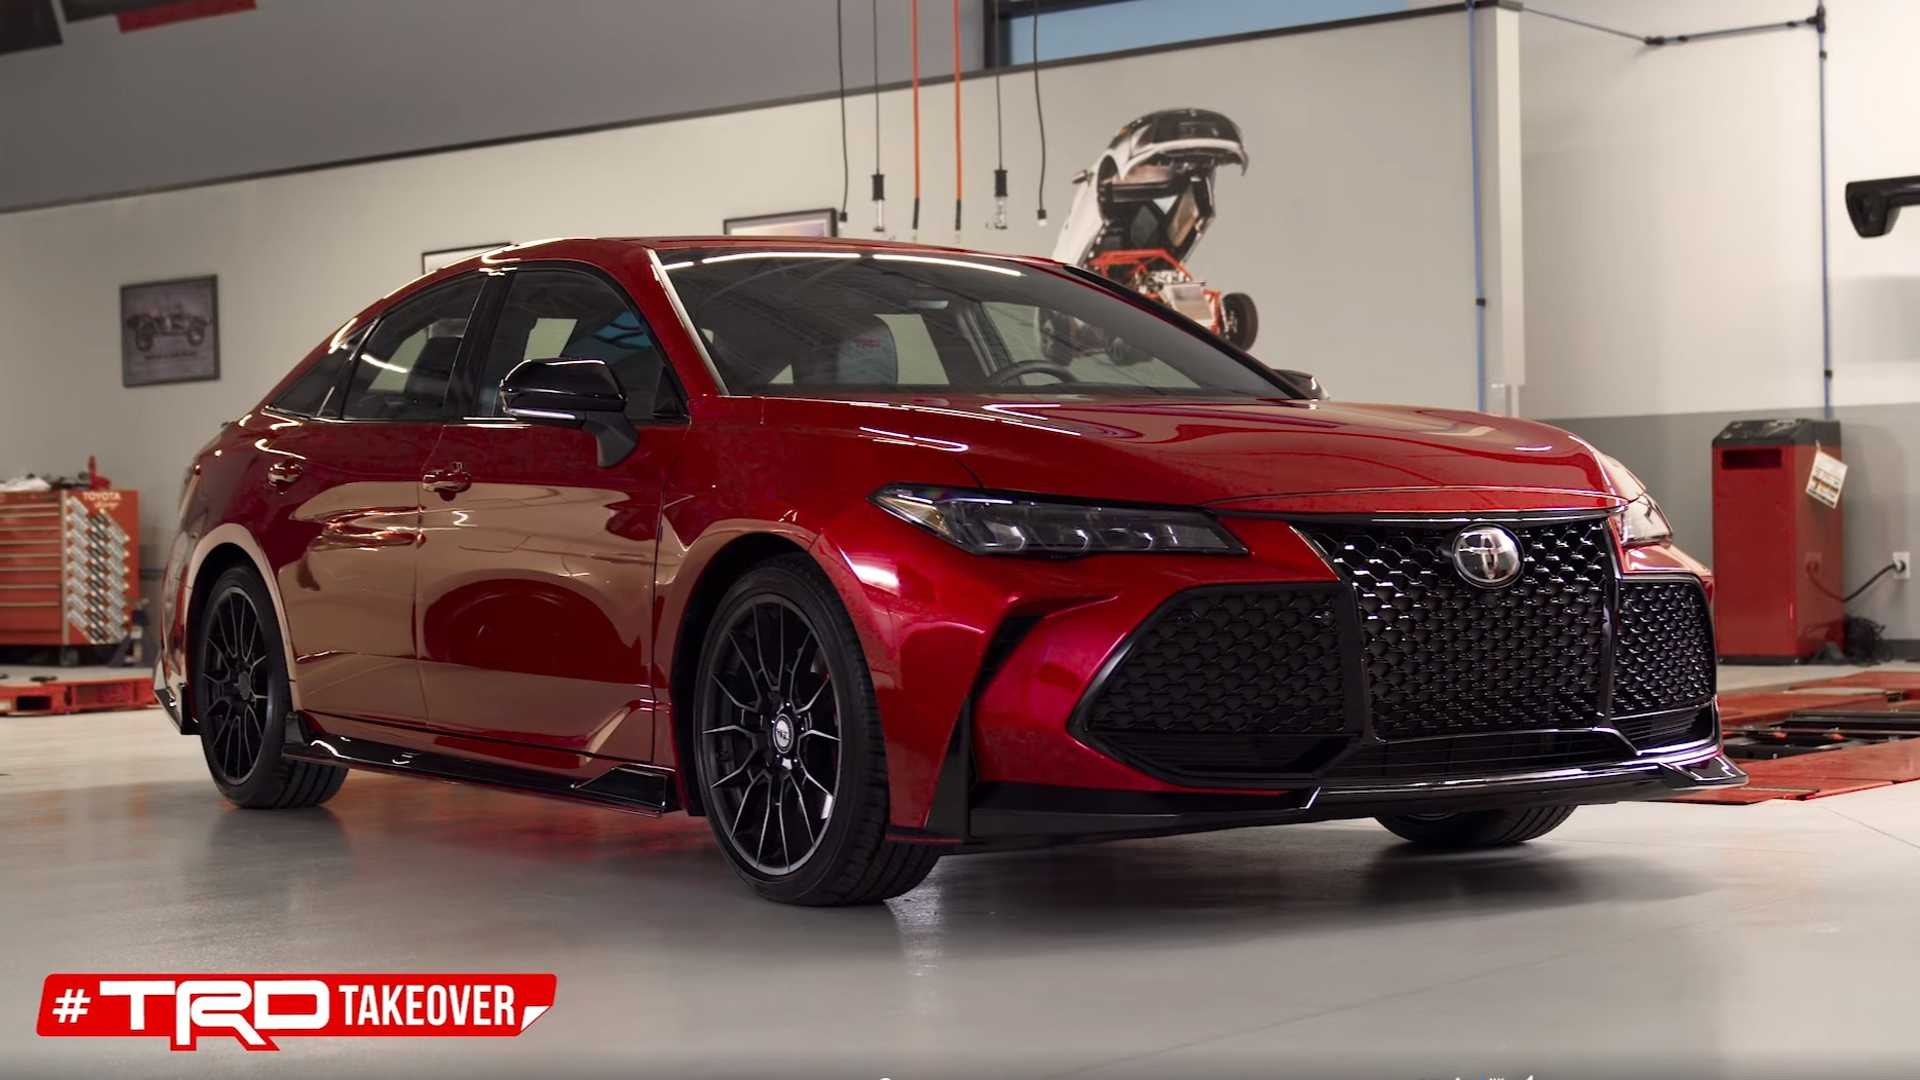 Toyota Teases Camry Trd Avalon Trd Like There S No